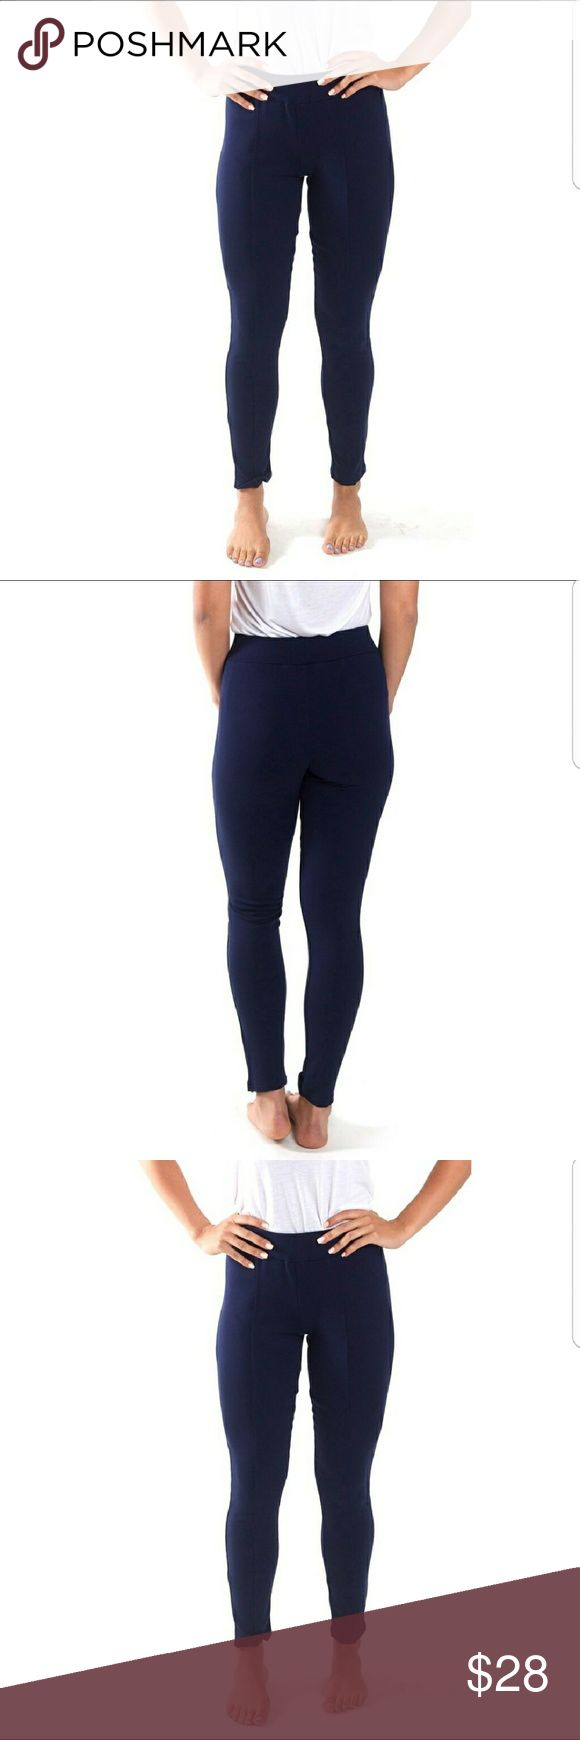 Navy streamline leggings Say goodbye to see through leggings with these thick leggings that give a flattering fit to any shape.  Thick waistband for control waist. Pants Leggings